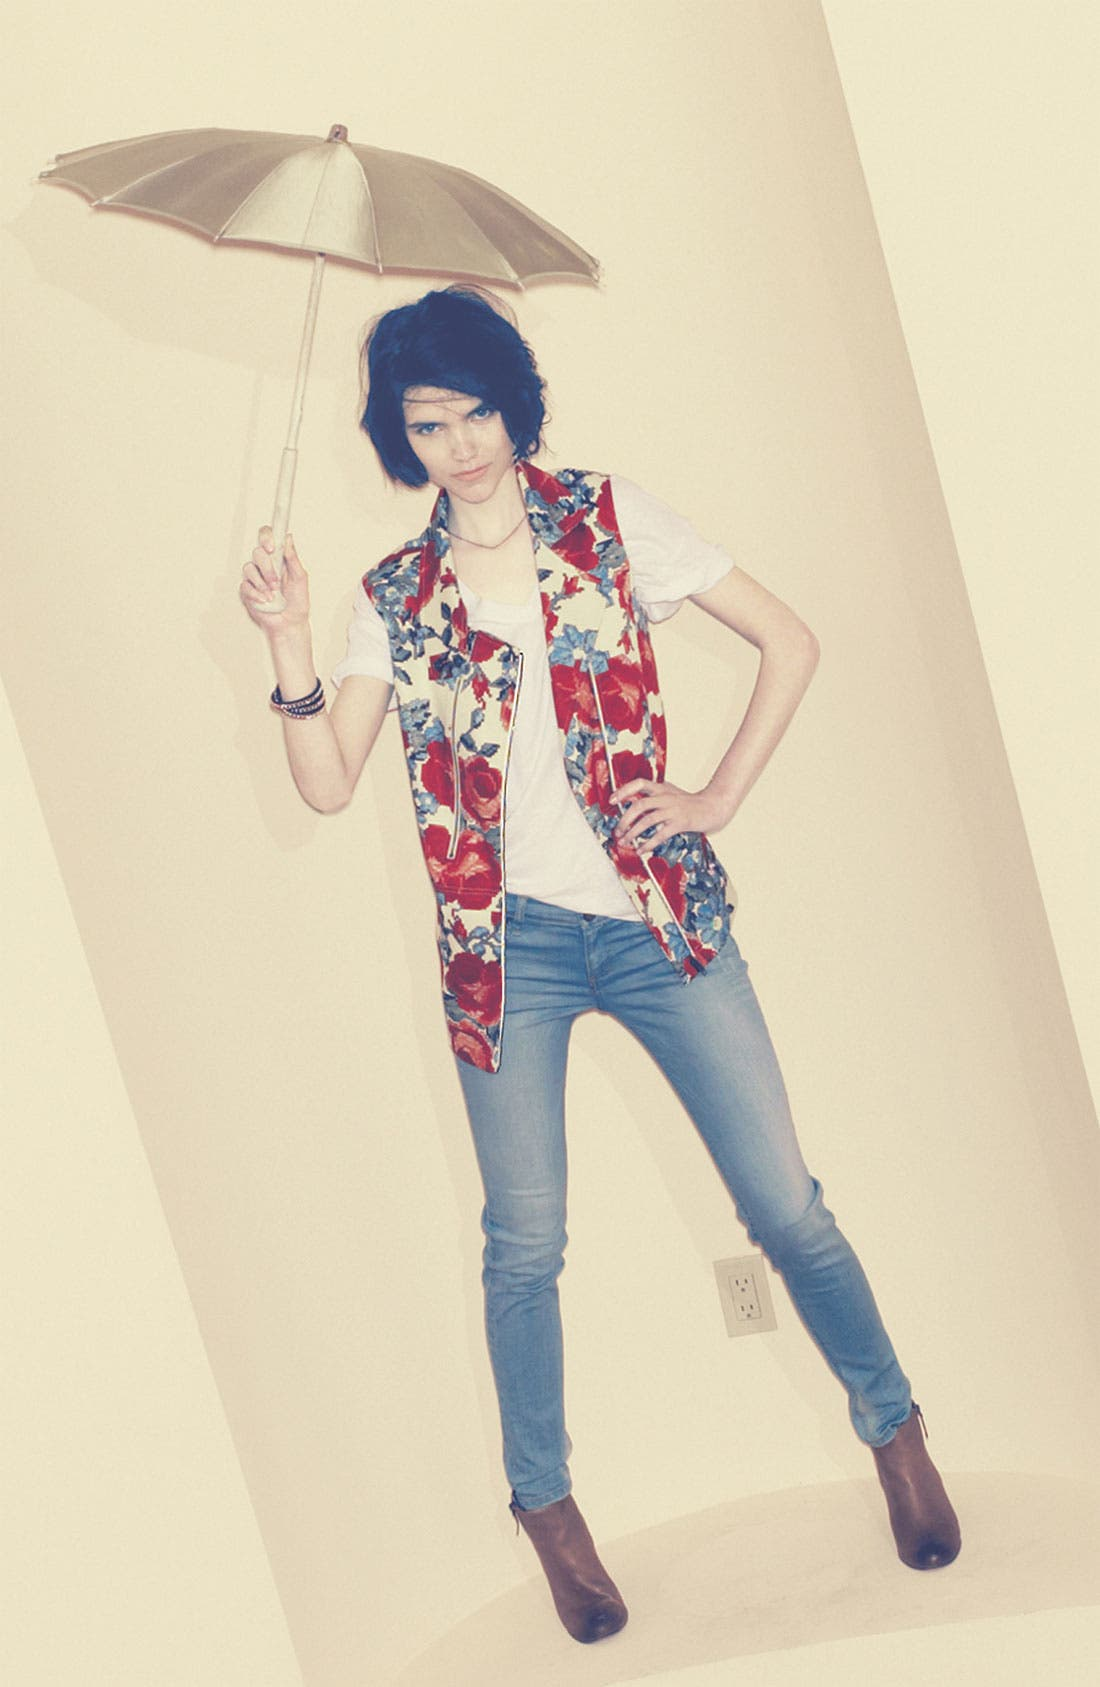 Alternate Image 1 Selected - Mural Vest, Leith Tee & edyson Jeans